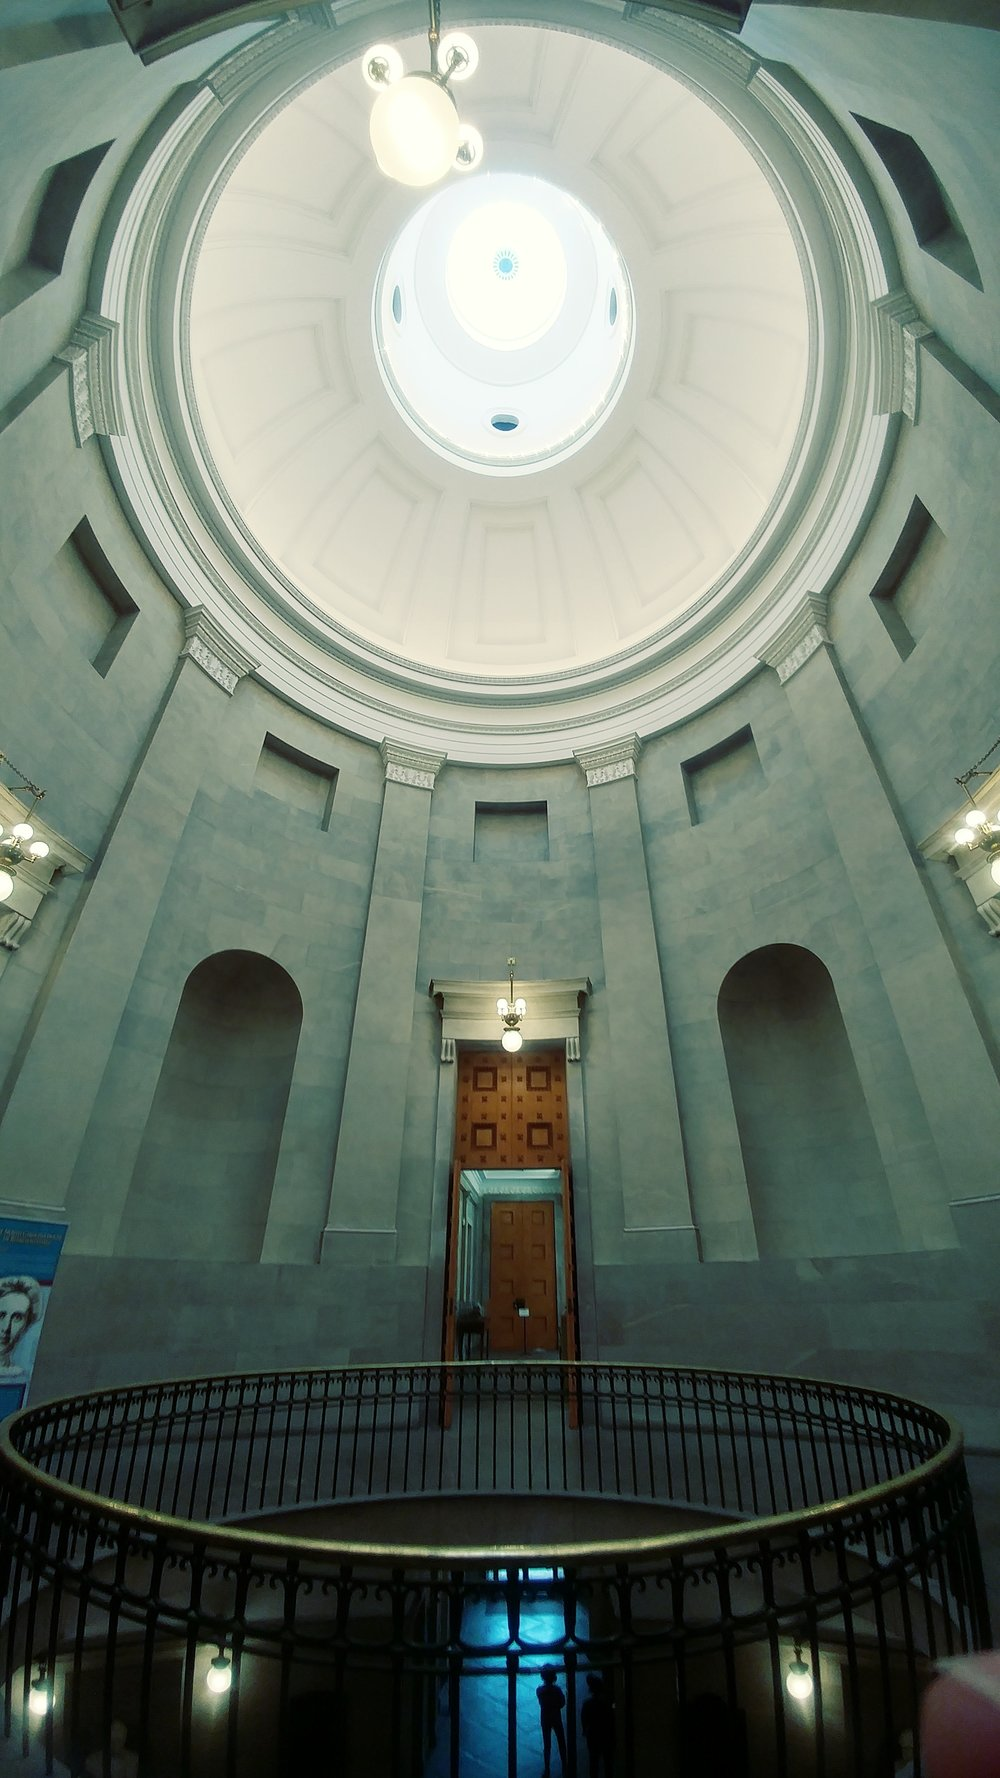 The Raleigh Capitol Building